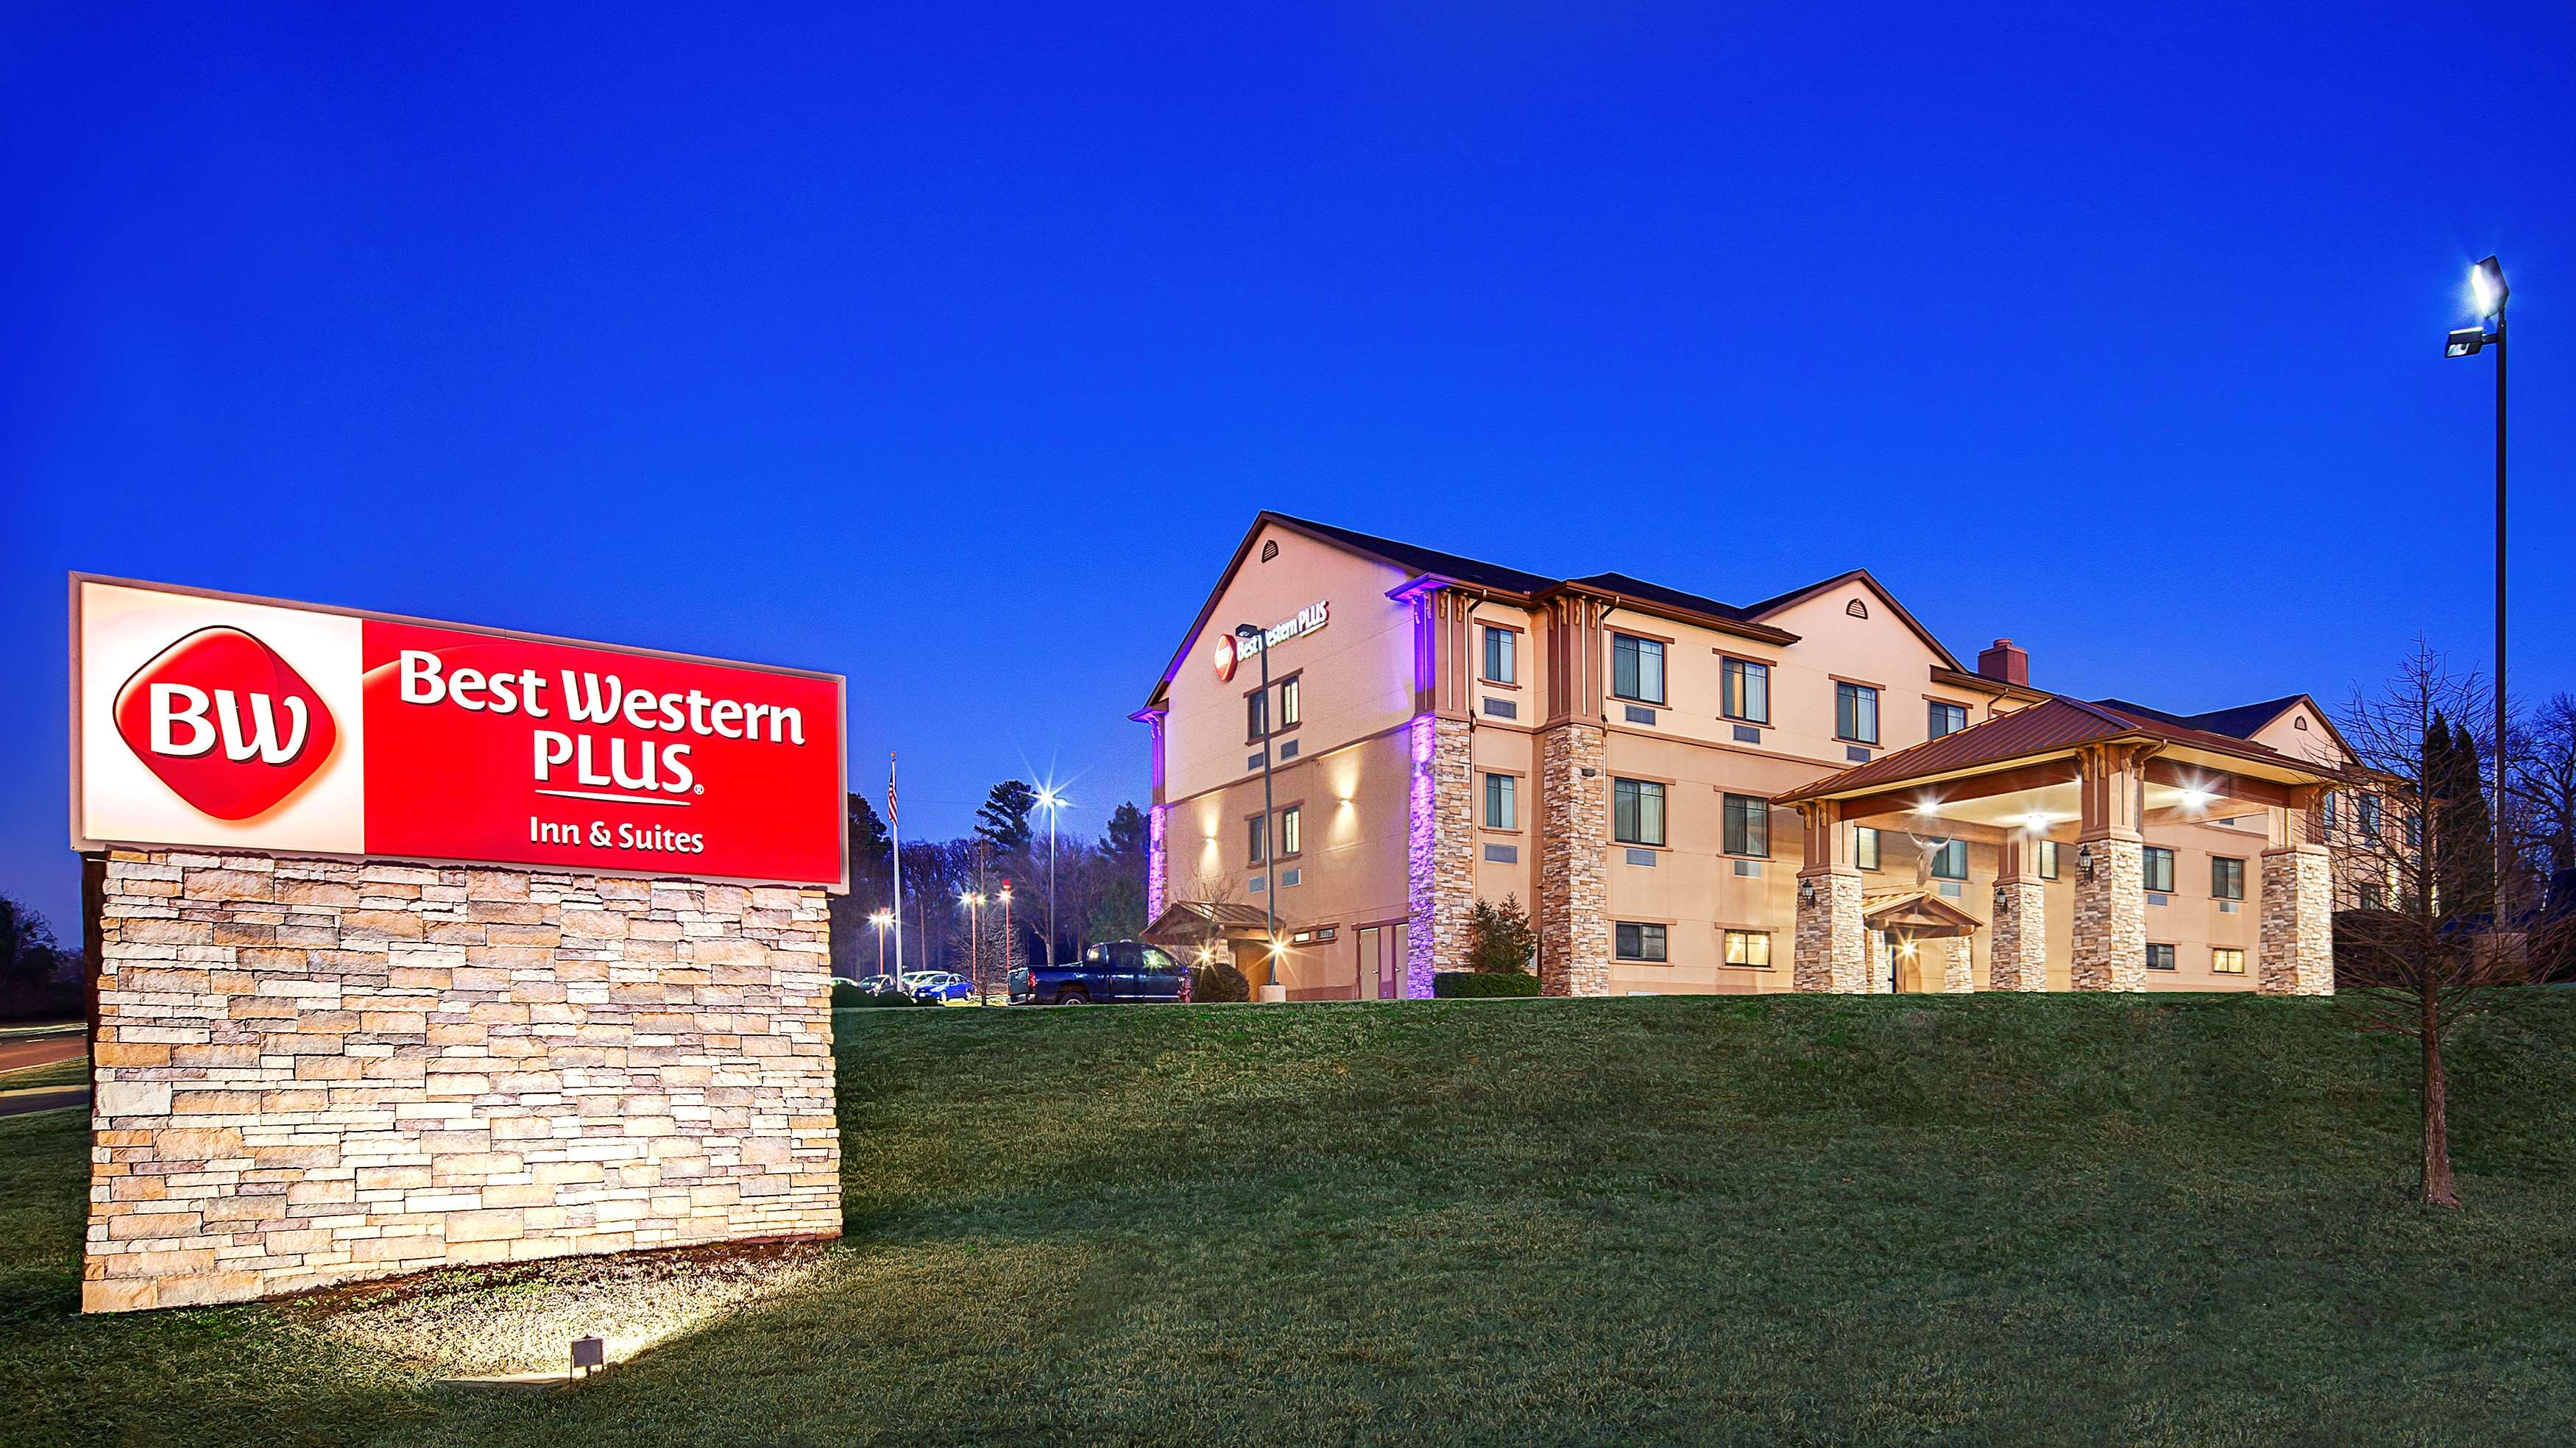 Best Western Plus Royal Mountain Inn & Suites image 0